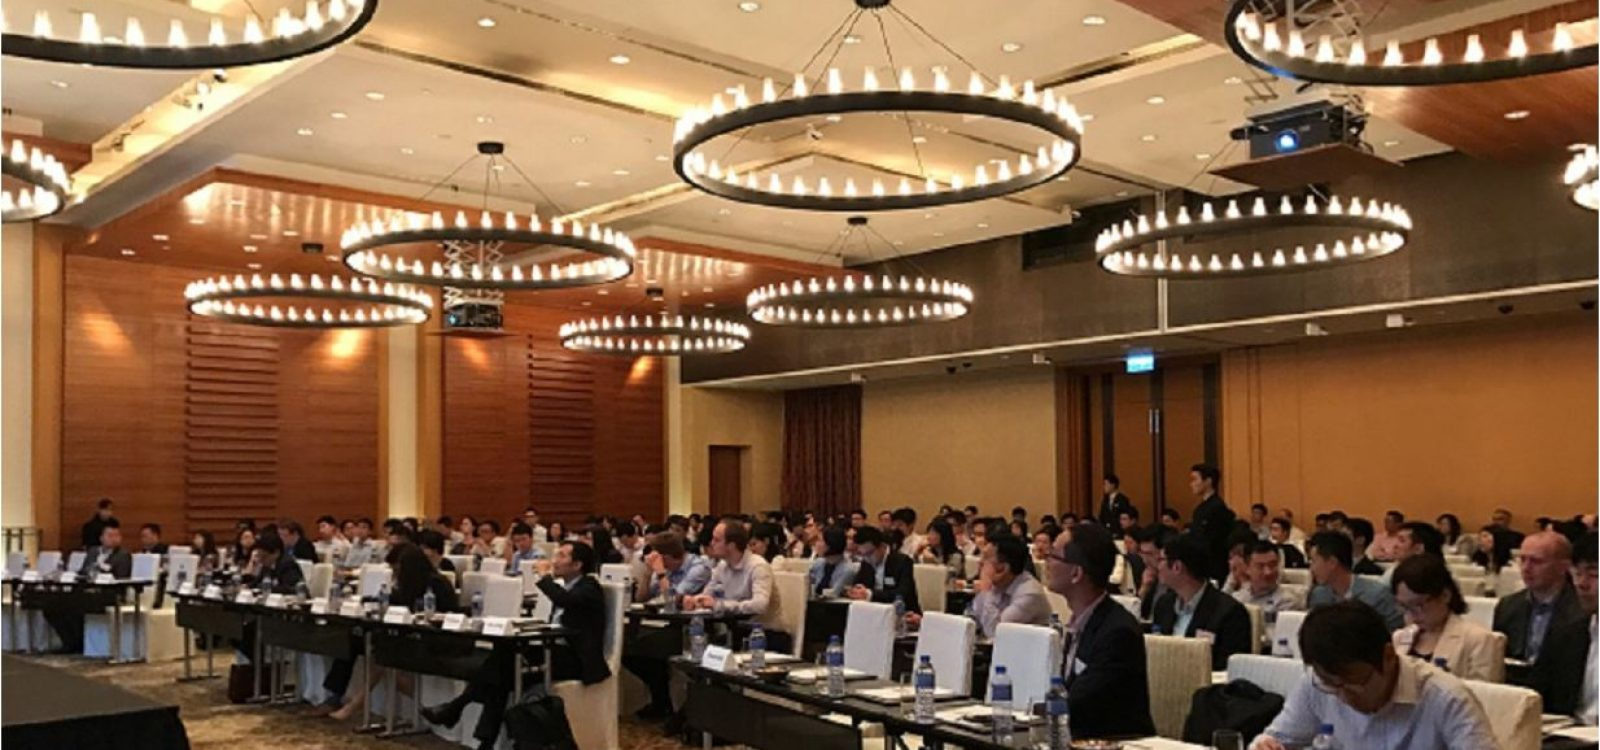 Asia's Joint Regional Seminar (JRS) to come to Sydney